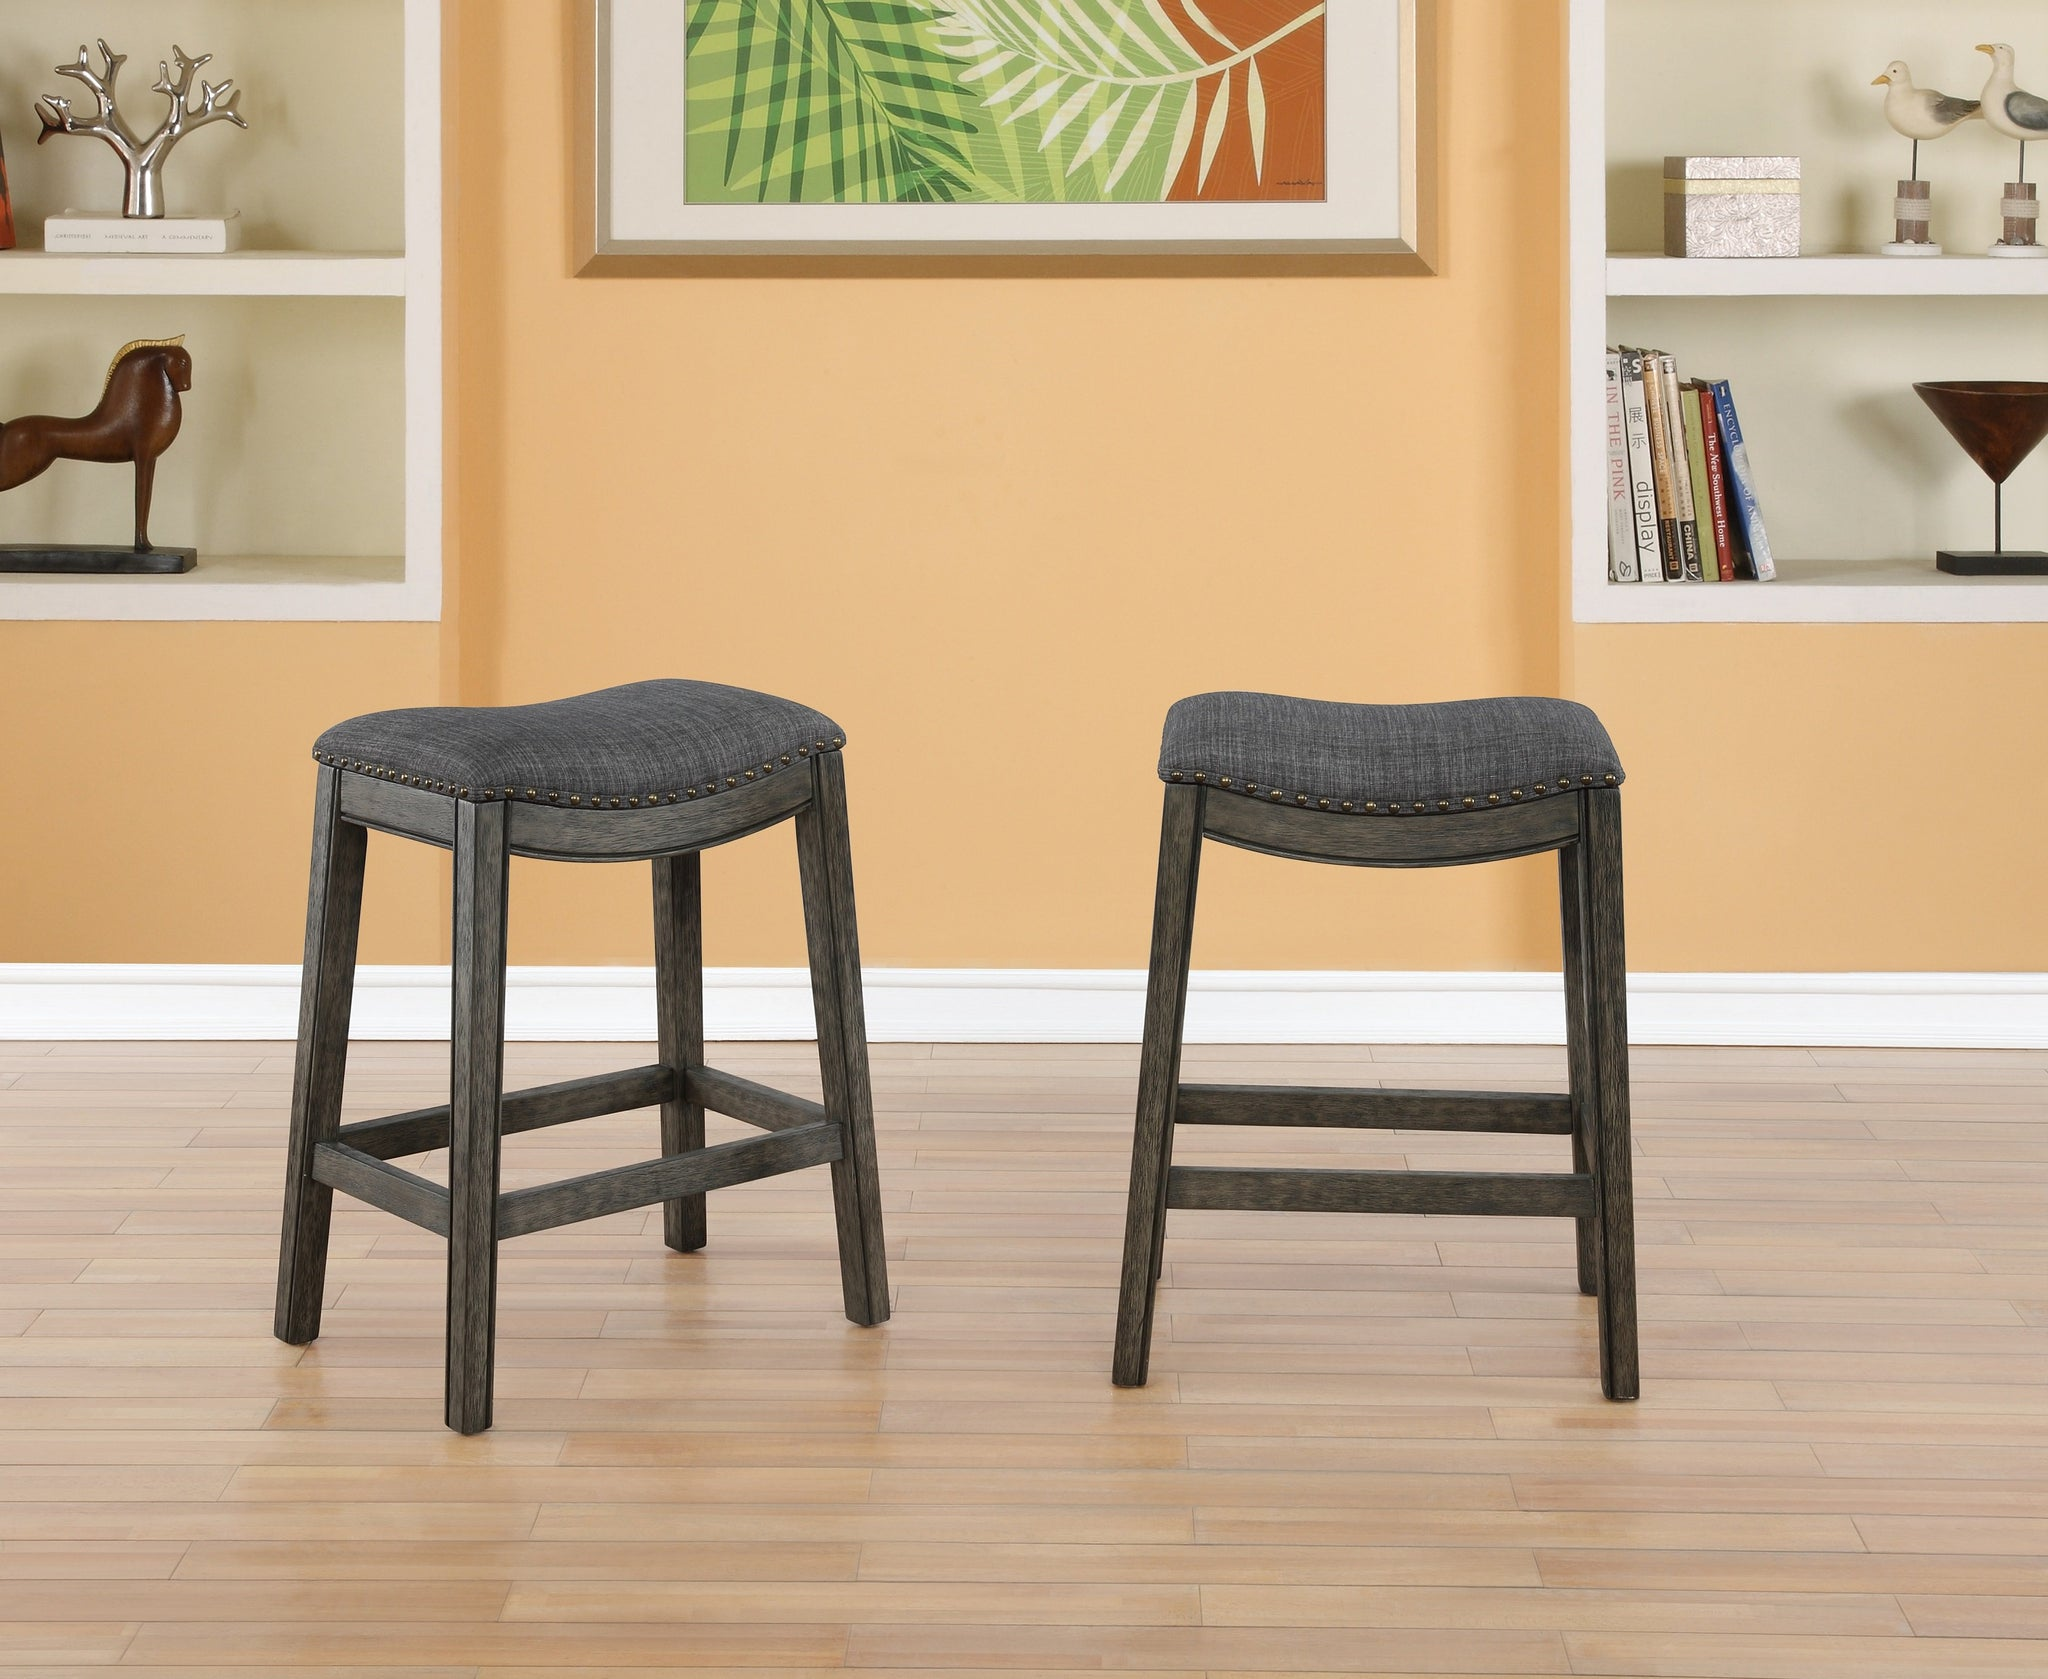 Maroni Finish Faric Upholstery Nailheaded Saddle Counter Stool in Gray, Set of 2